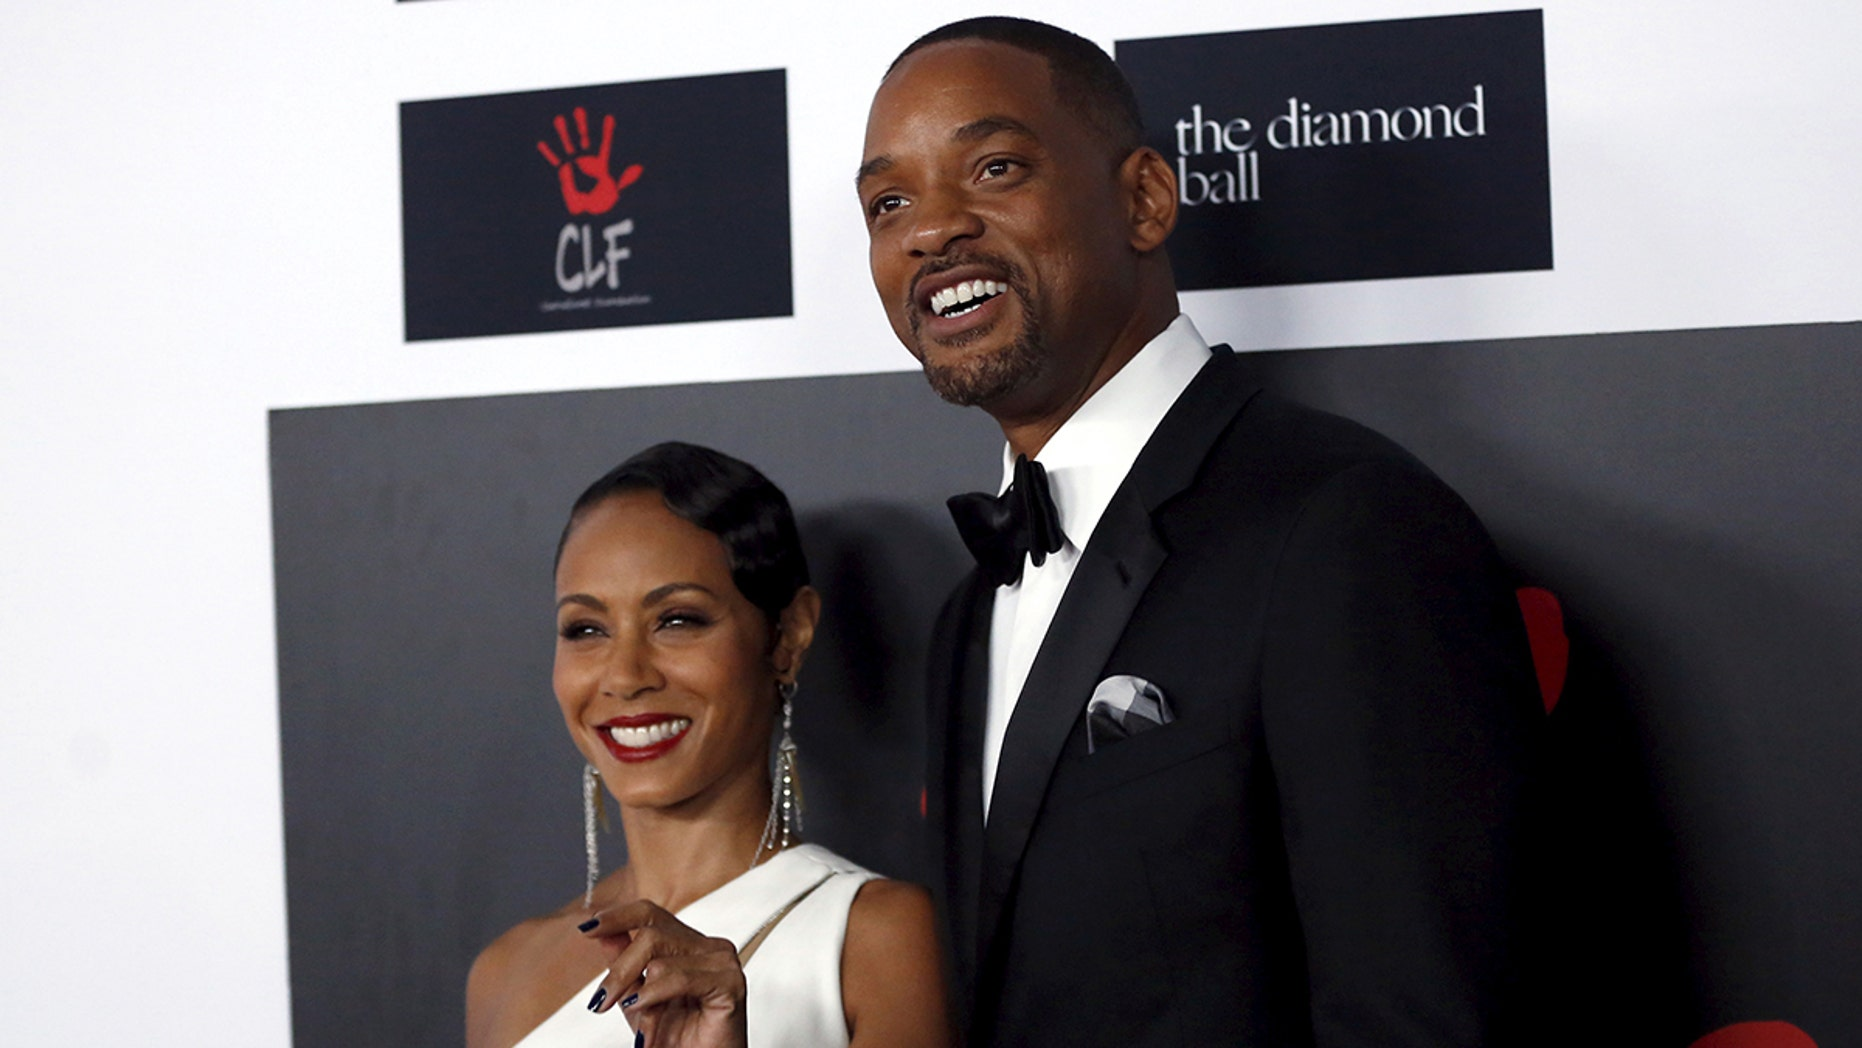 Actor Will Smith and his wife, actress Jada Pinkett Smith pose at the second annual Diamond Ball fundraising event in Santa Monica, California December 10, 2015.  REUTERS/Mario Anzuoni - GF10000262061